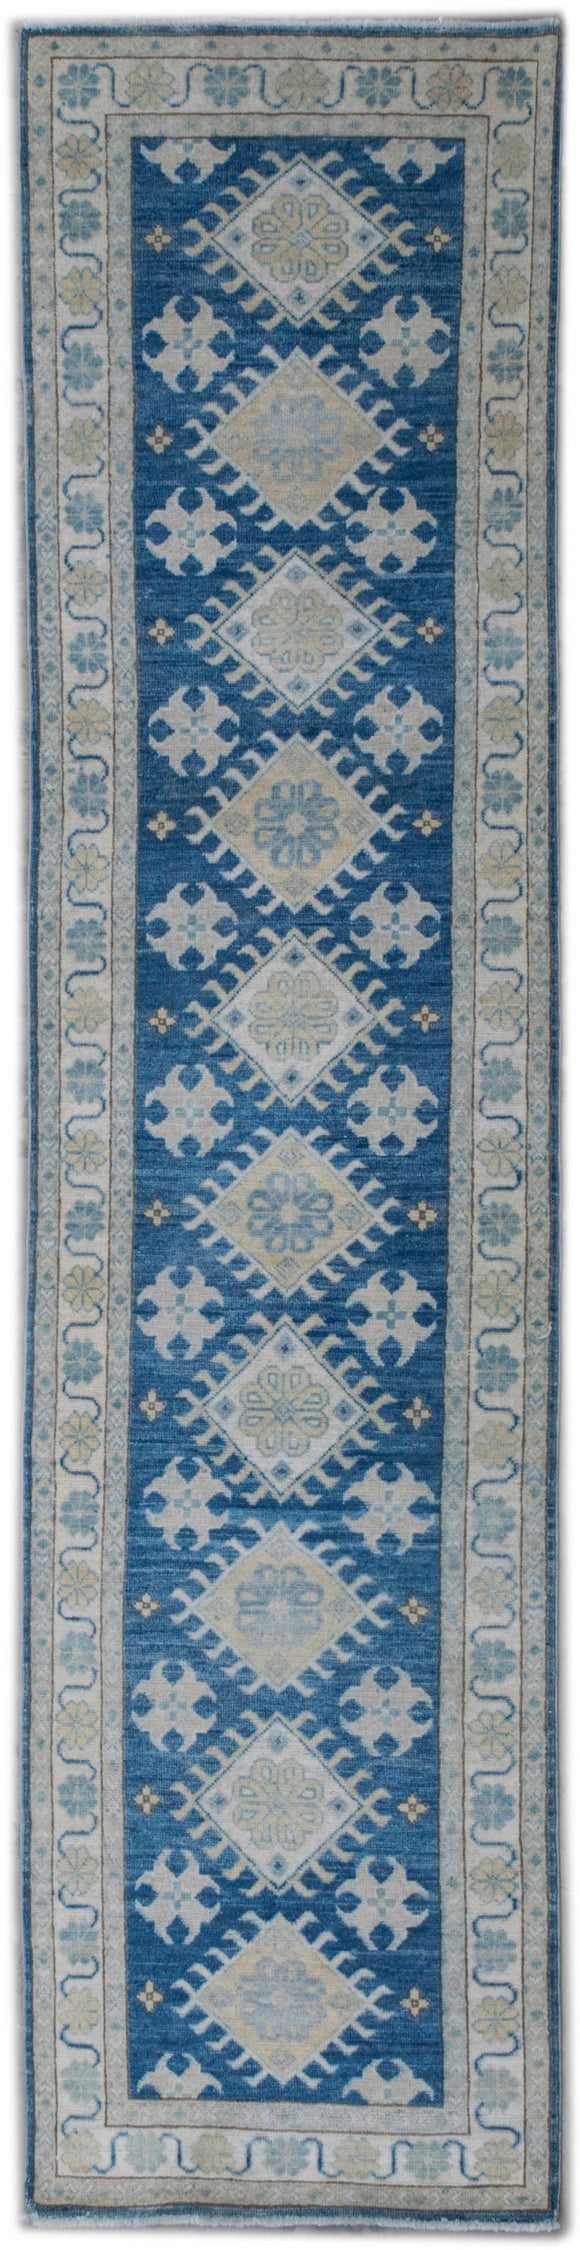 Handmade Sultan Collection Hallway Runner | 348 x 80 cm